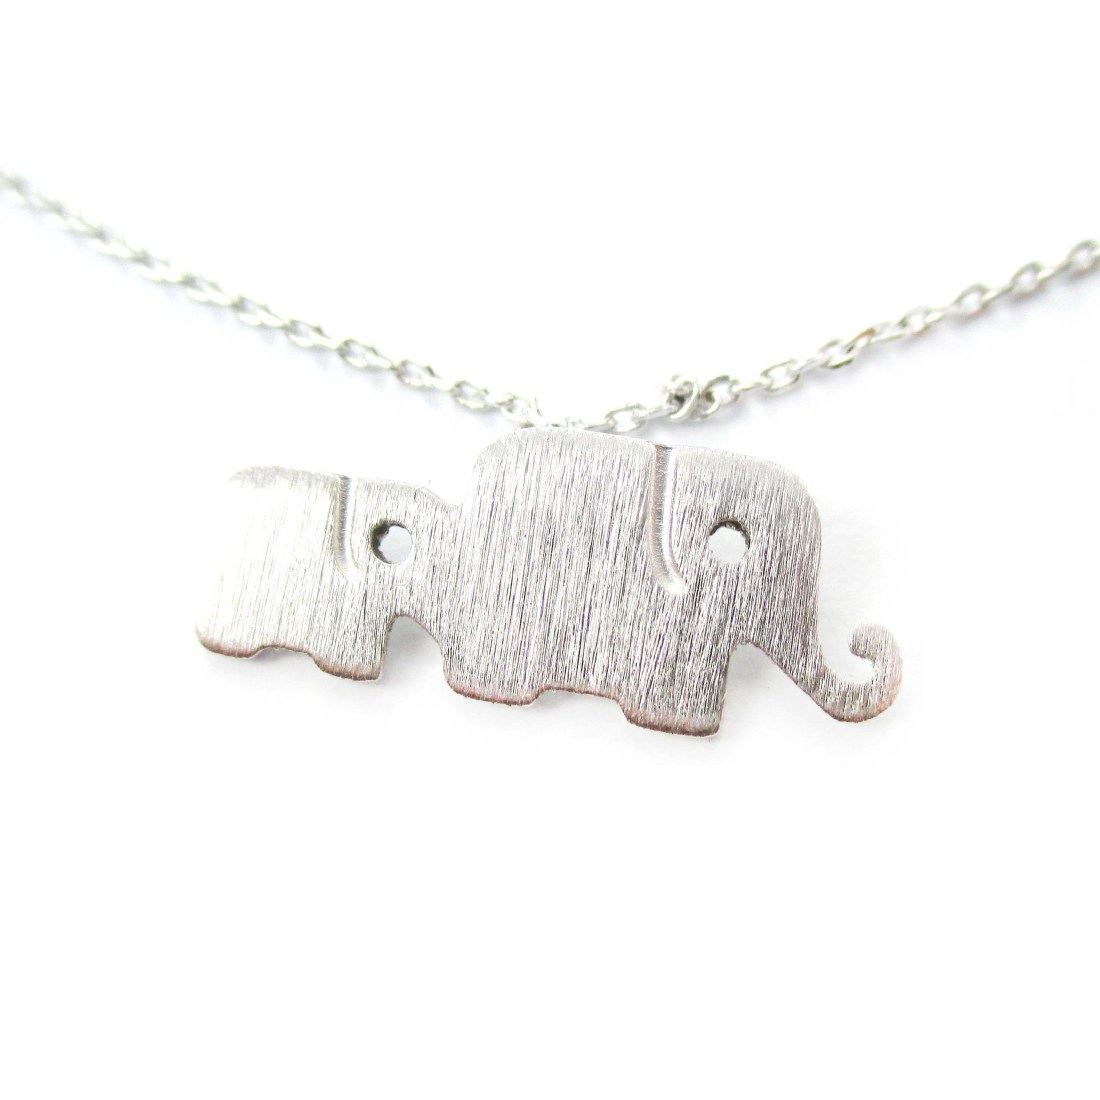 Classic elephant mother and baby family pendant necklace in silver classic elephant mother and baby family pendant necklace in silver mozeypictures Image collections